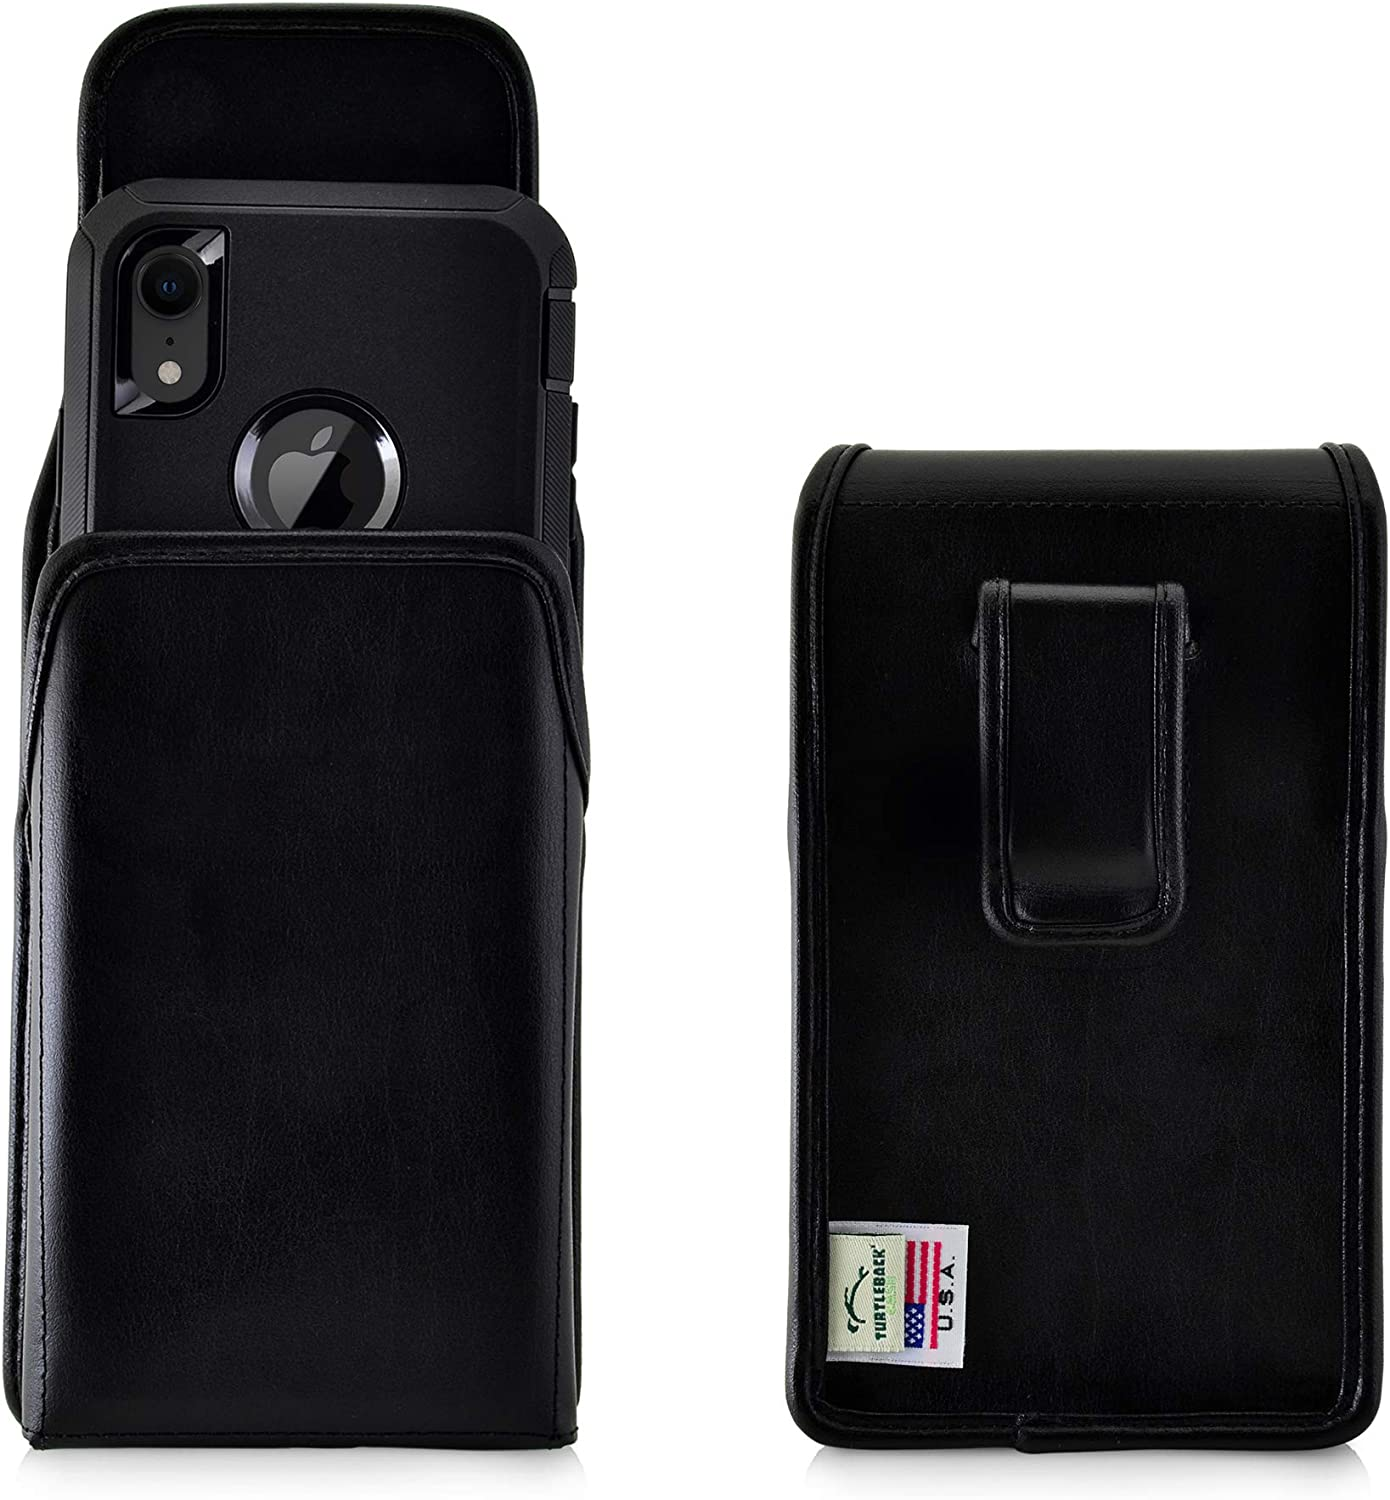 Turtleback Holster Designed for iPhone 11 (2019) & XR (2018) Fits w/OB Defender or Bulky Cases, Vertical Belt Case Black Leather Pouch with Executive Belt Clip, Made in USA